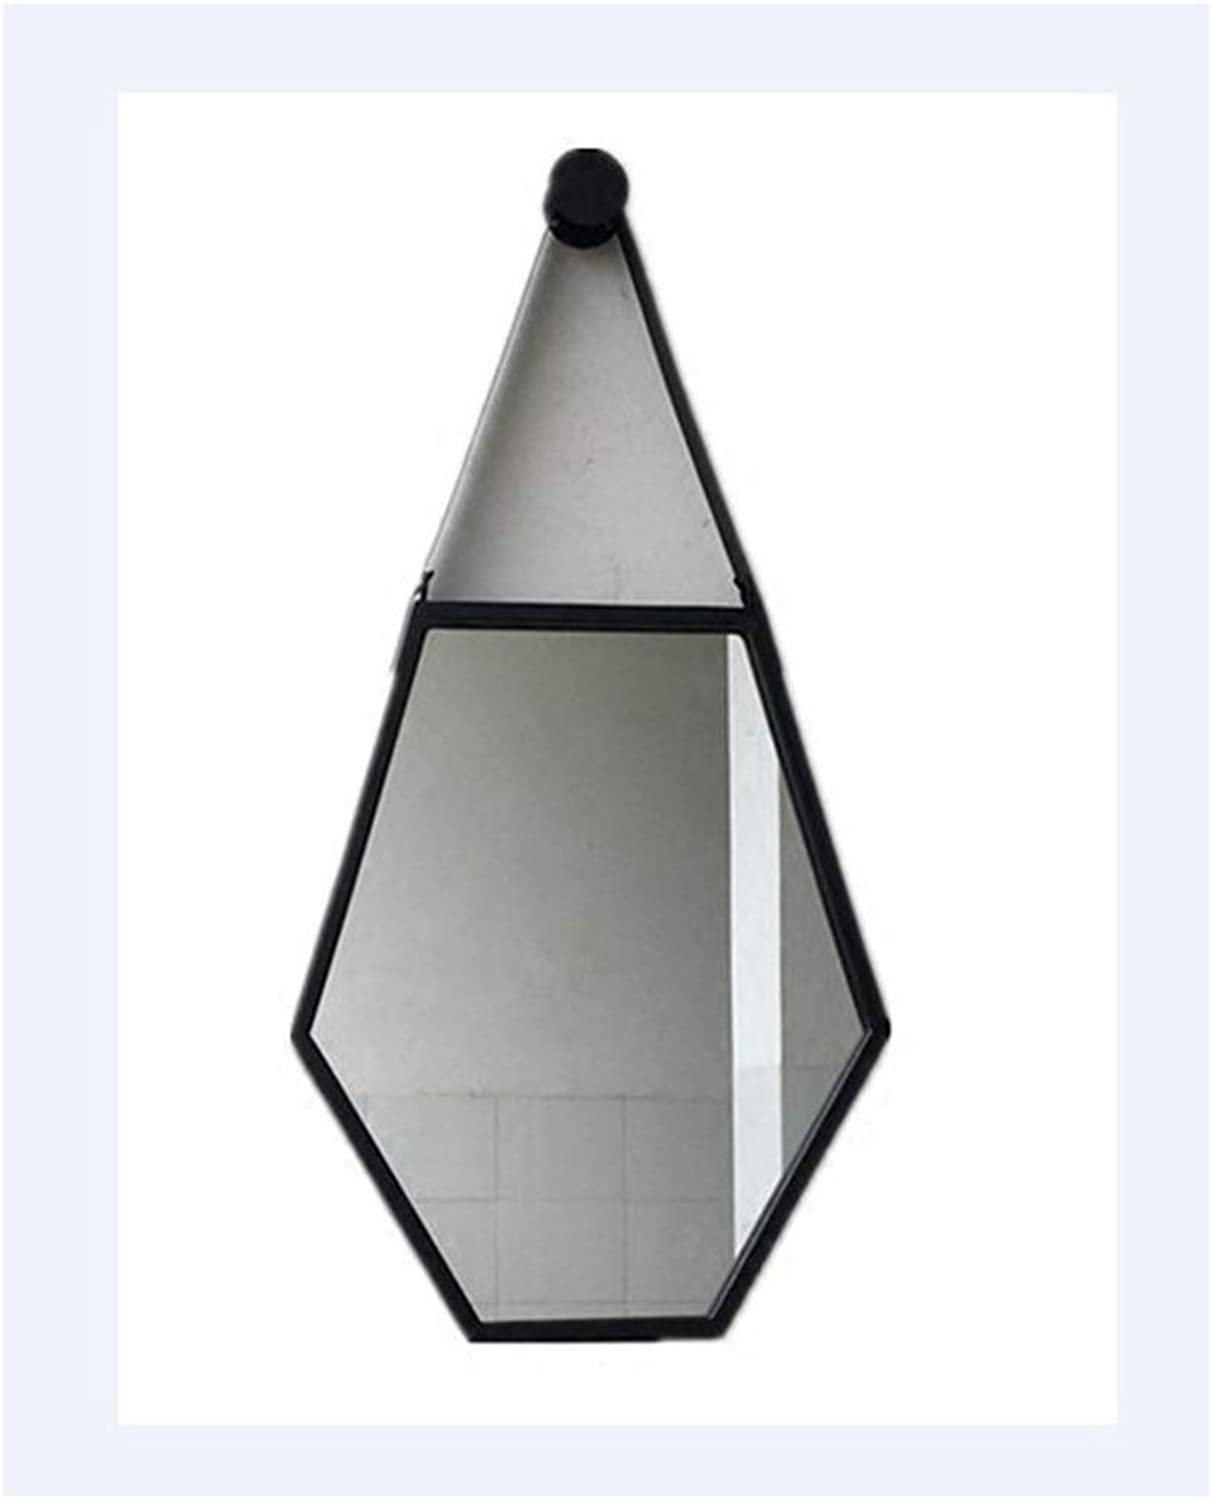 YYF Nordic Hexagonal Bathroom Dressing Wall Mounted Mirror 20 inches  26 inches (50cm  65cm)